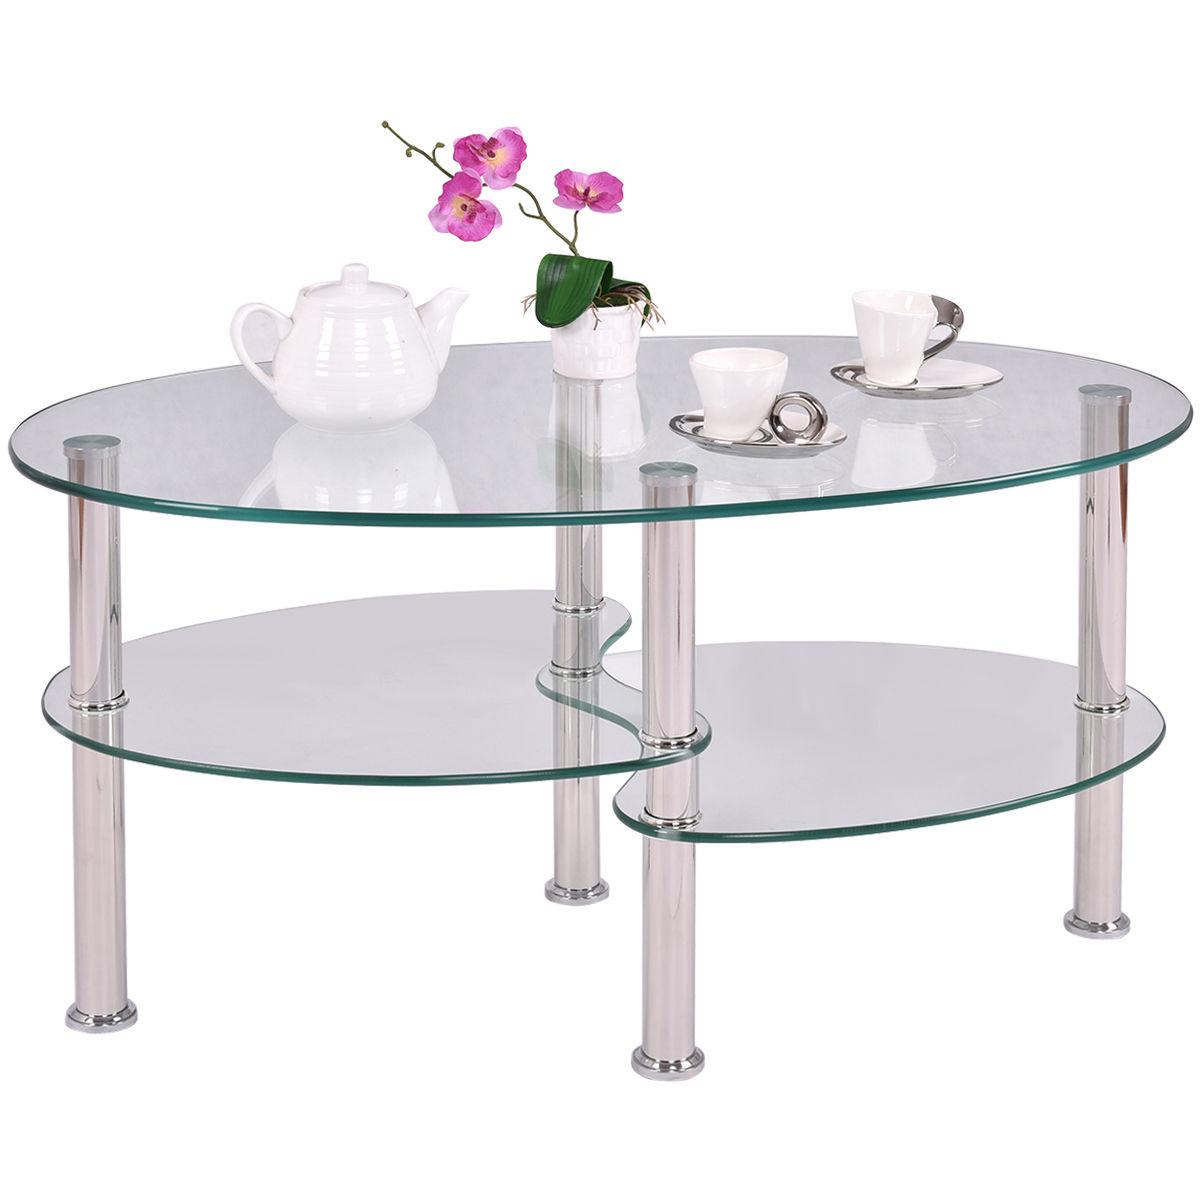 oval side table. Clear Glass Oval Side Coffee Table Shelf Chrome Base Living Room Furniture